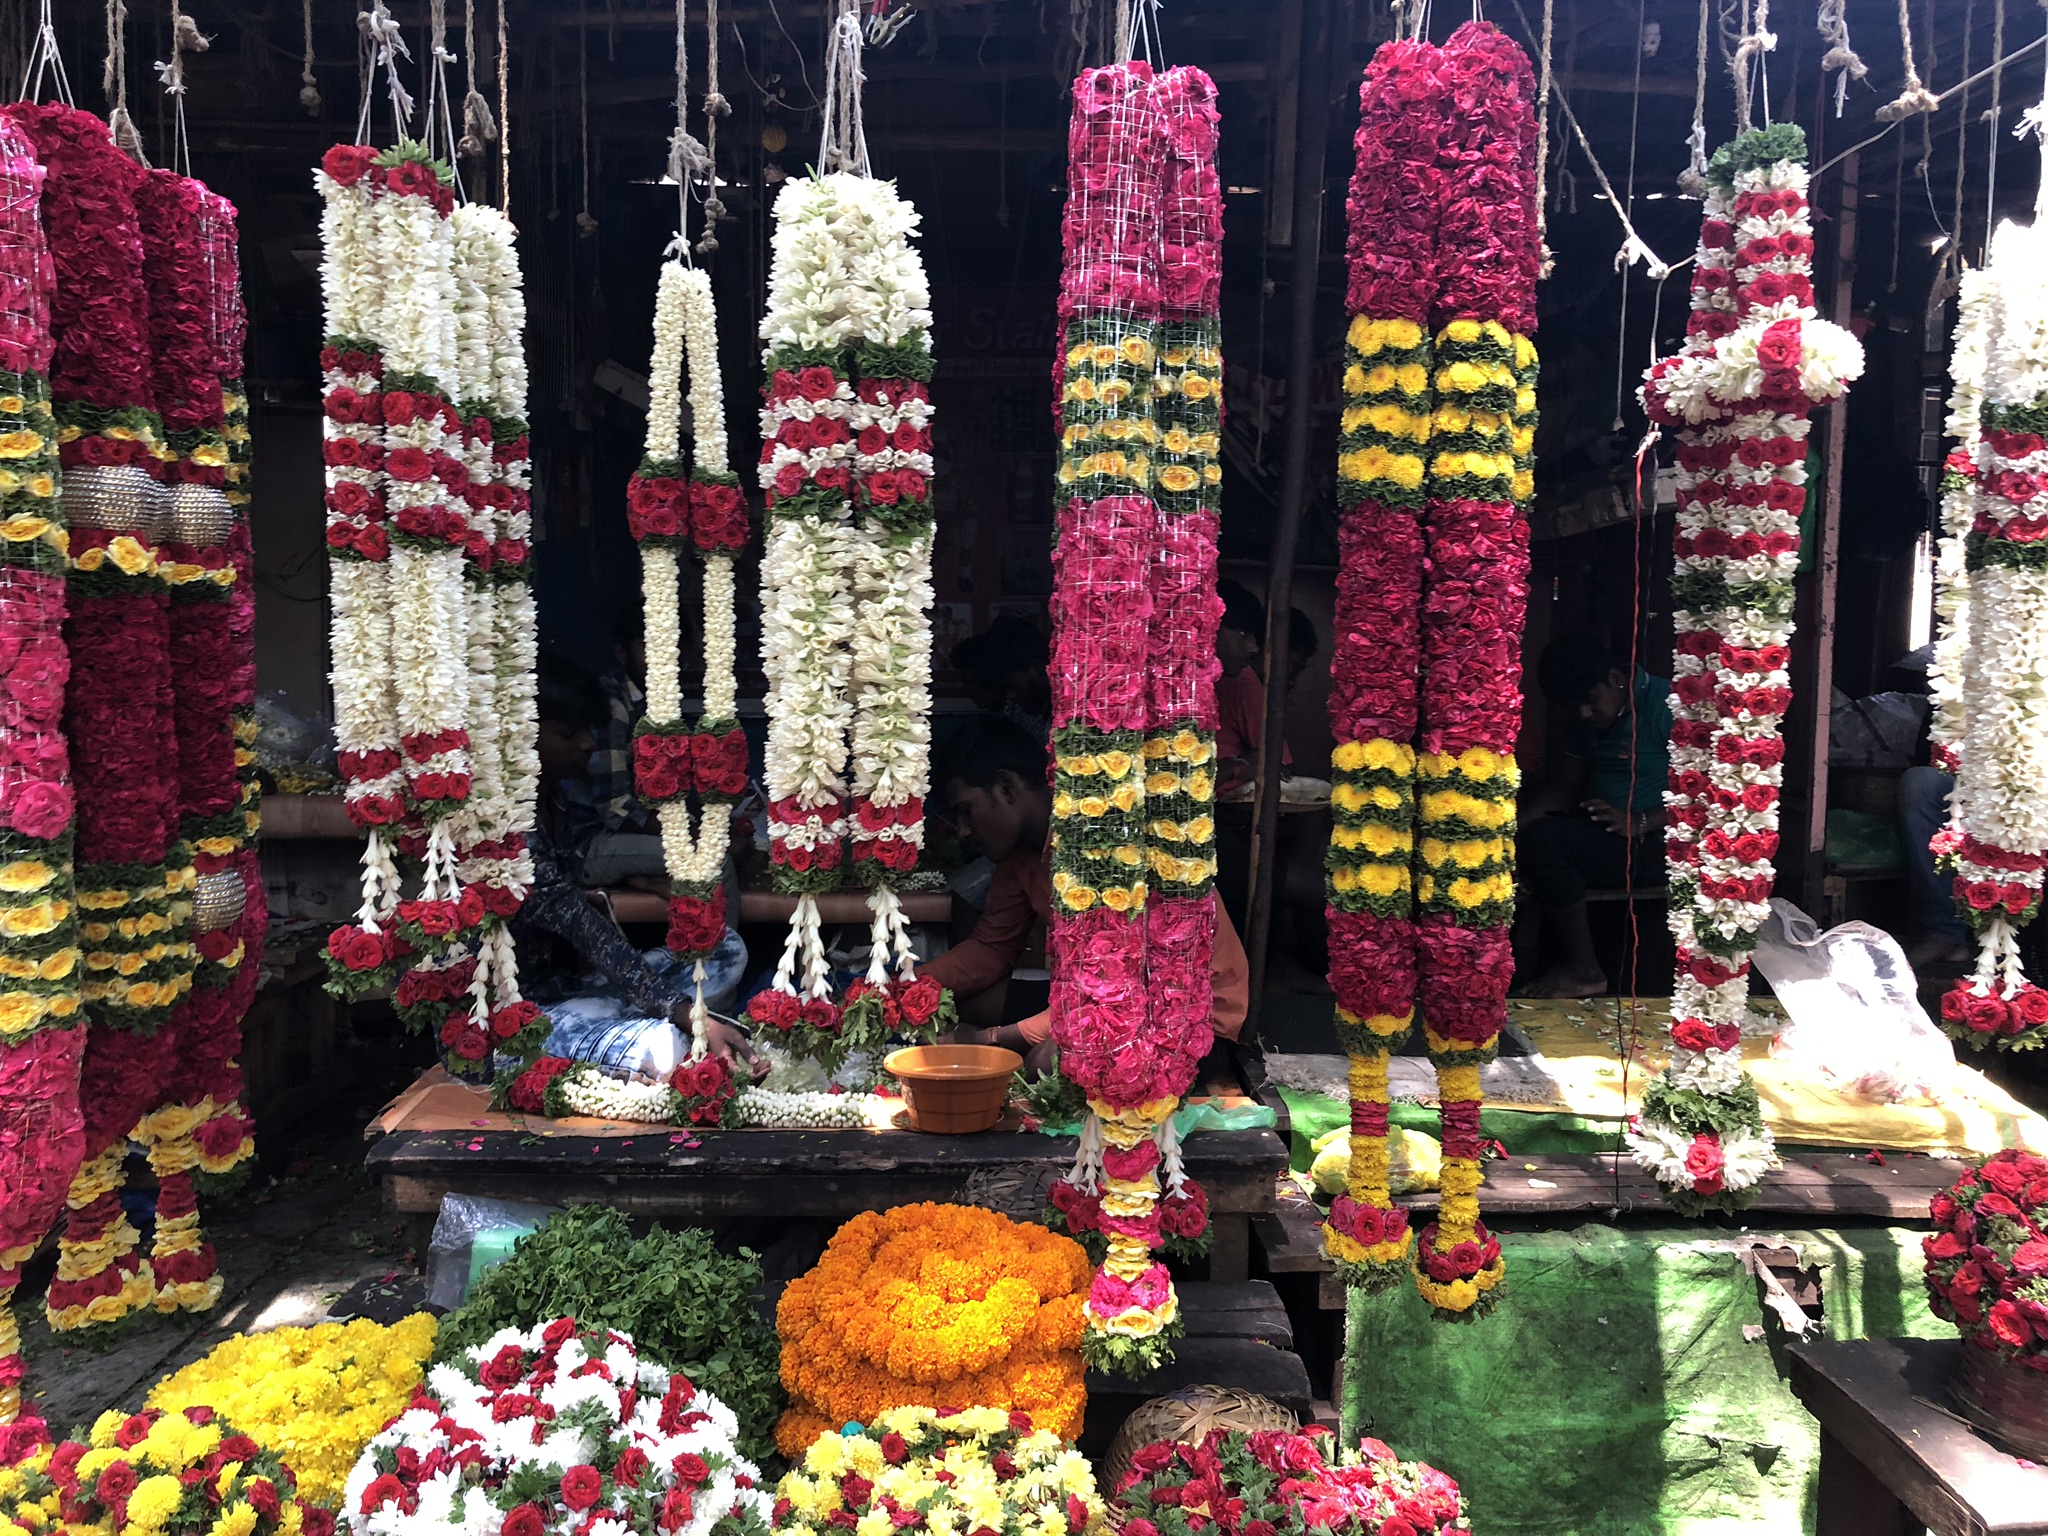 Veggies, fruit and flower shopping for Vishu!